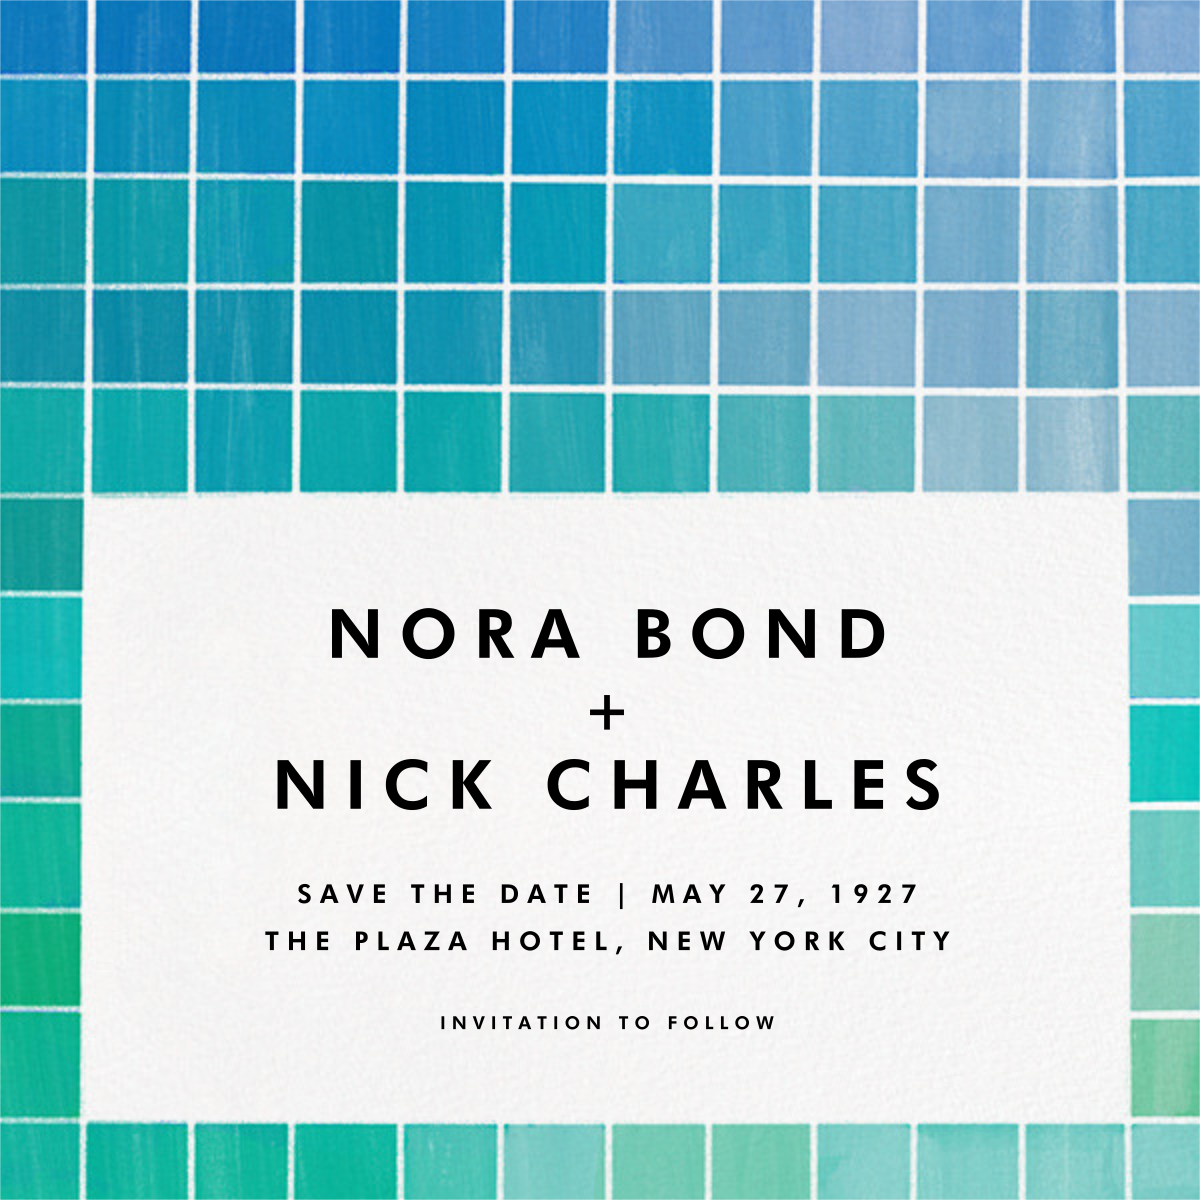 Chromatic - Blue - Kelly Wearstler - Party save the dates